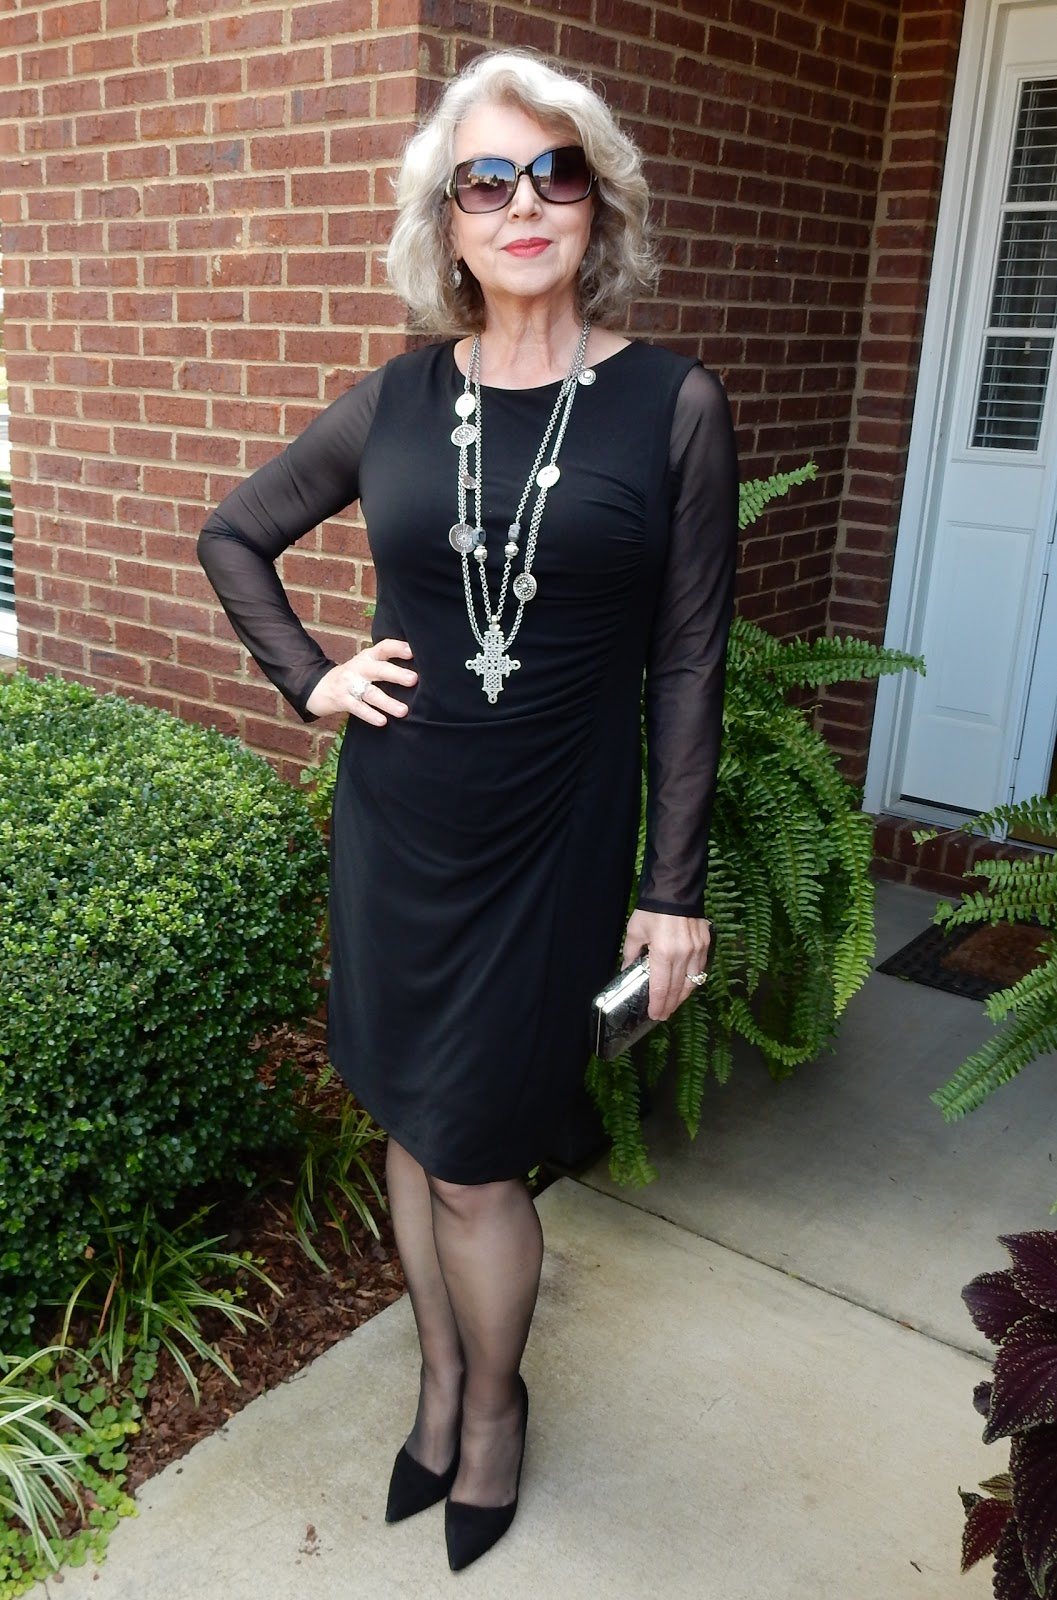 Black dress saying - I Wore A Black Dress From Chico S Last Year The Dress Has Sheer Mesh Sleeves I Paired It With Black Suede Heels From Saks Off 5th And Carried A Small